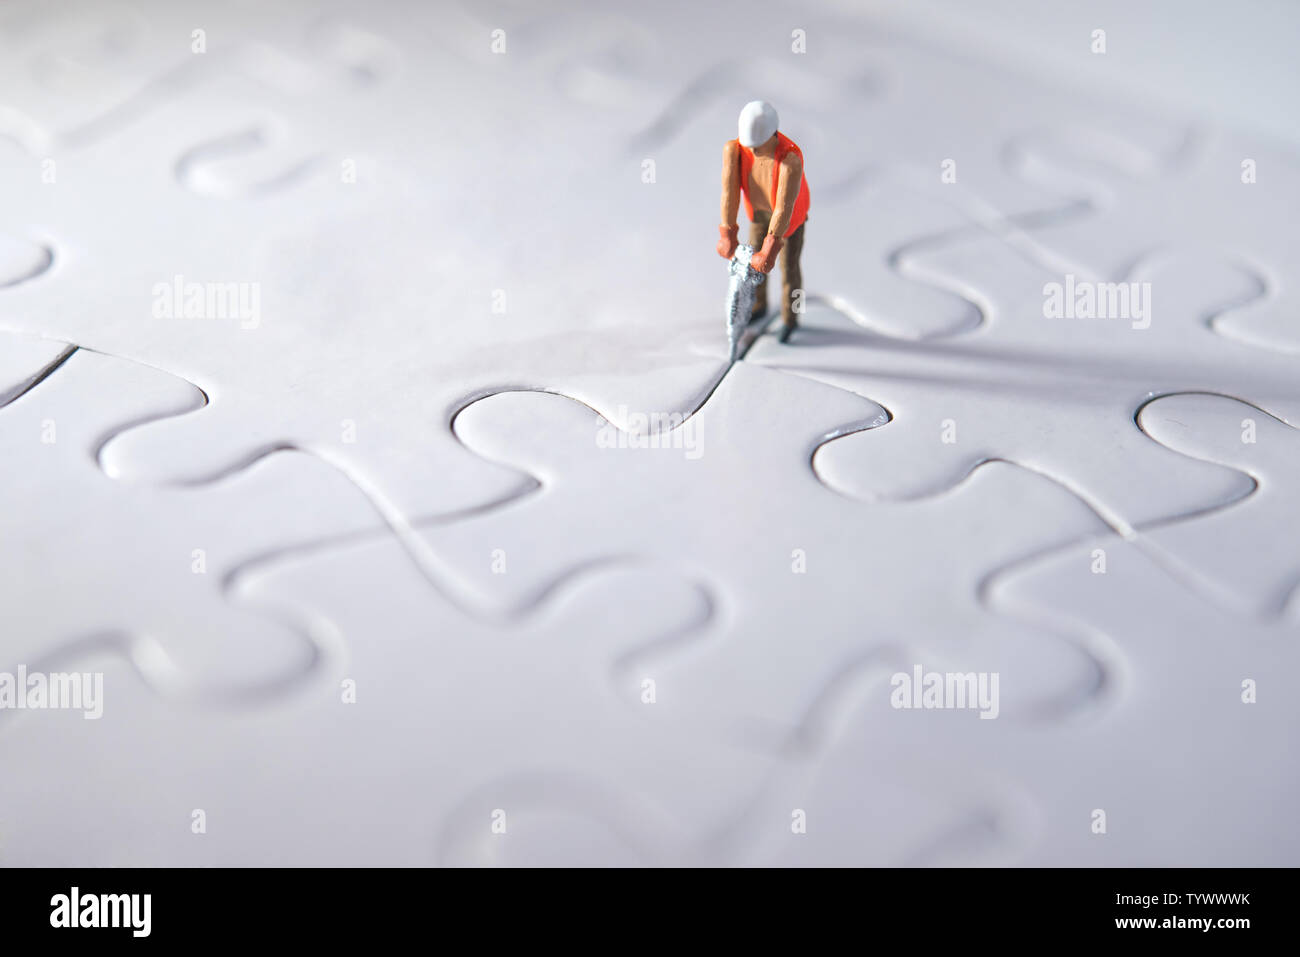 Miniature person constructing puzzles, making way for the team and working concept. Effort concept Stock Photo